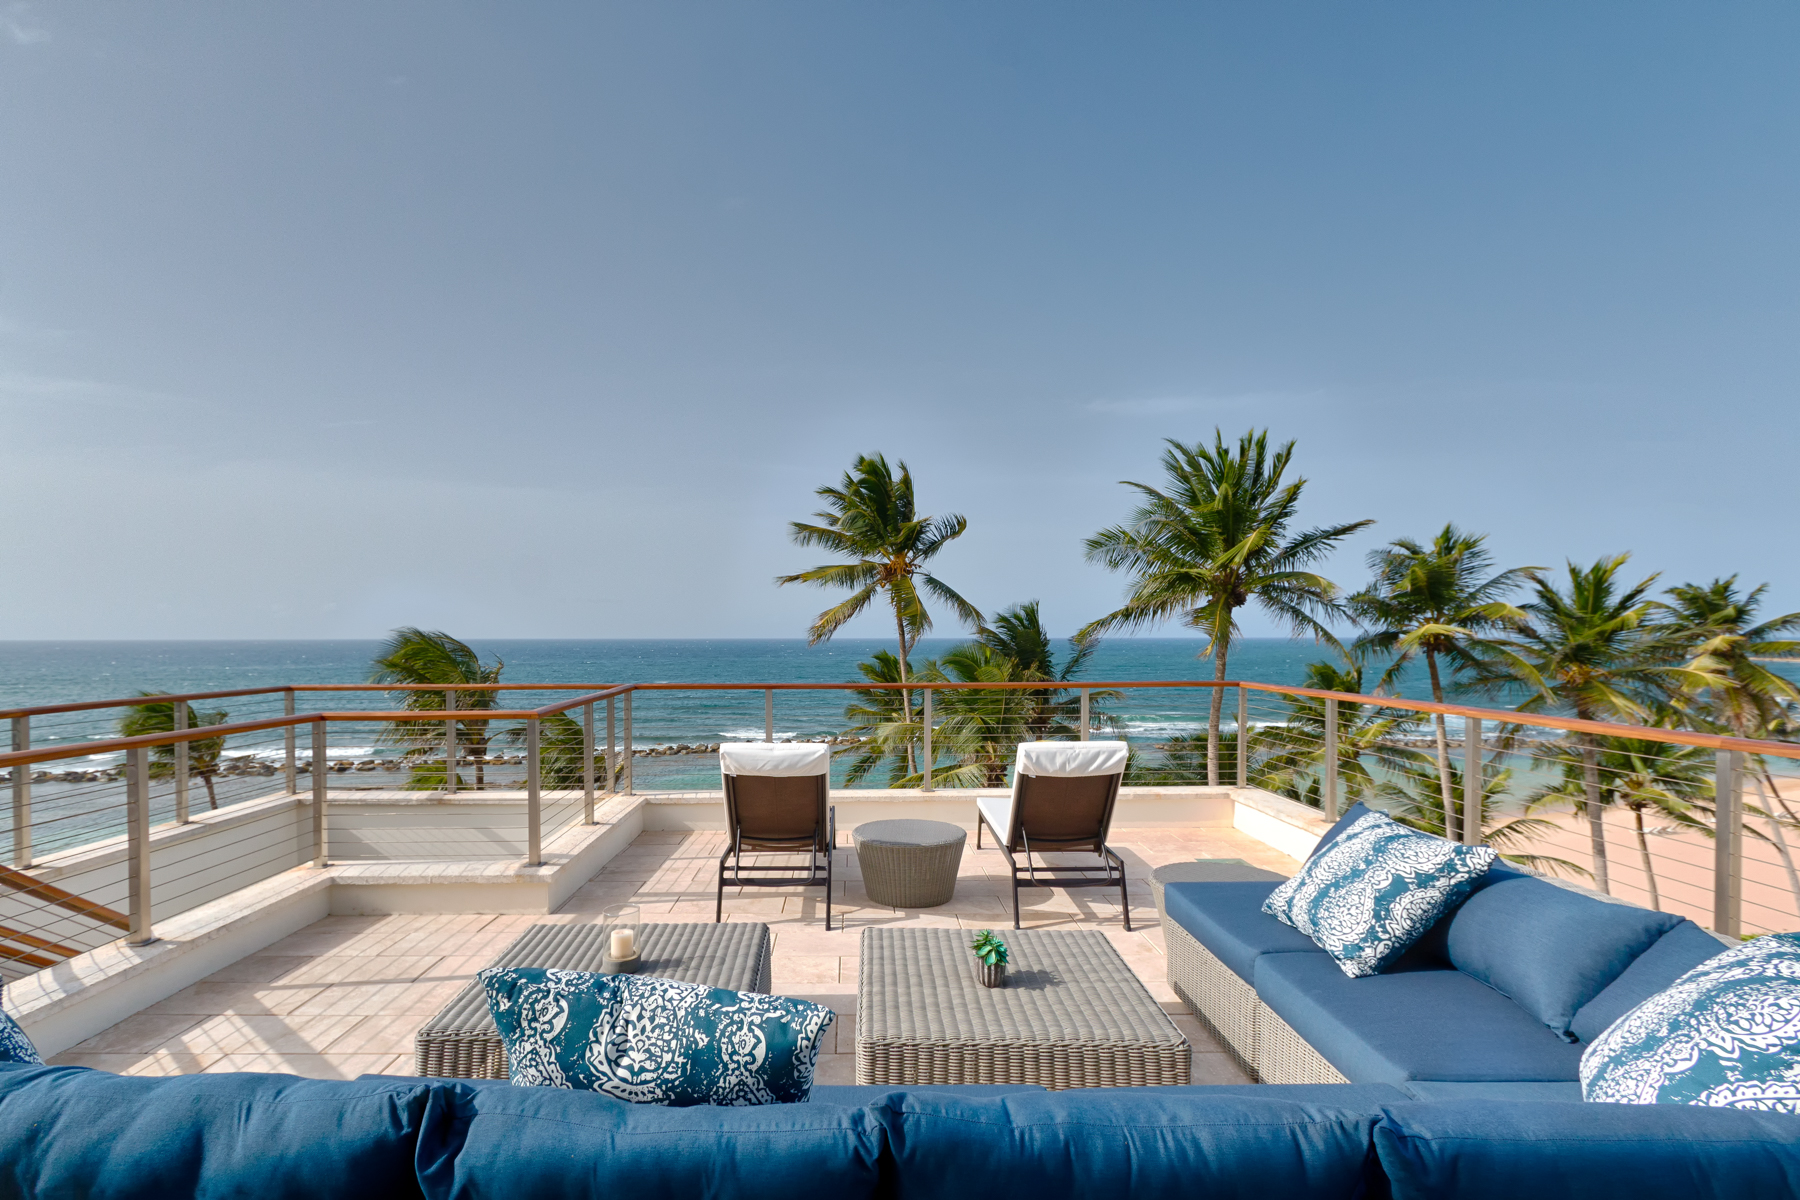 Кондоминиум для того Продажа на Branded Beachfront Penthouse 3641 200 Dorado Beach Drive Ritz Carlton Reserve Dorado Beach, 00646 Пуэрто-Рико